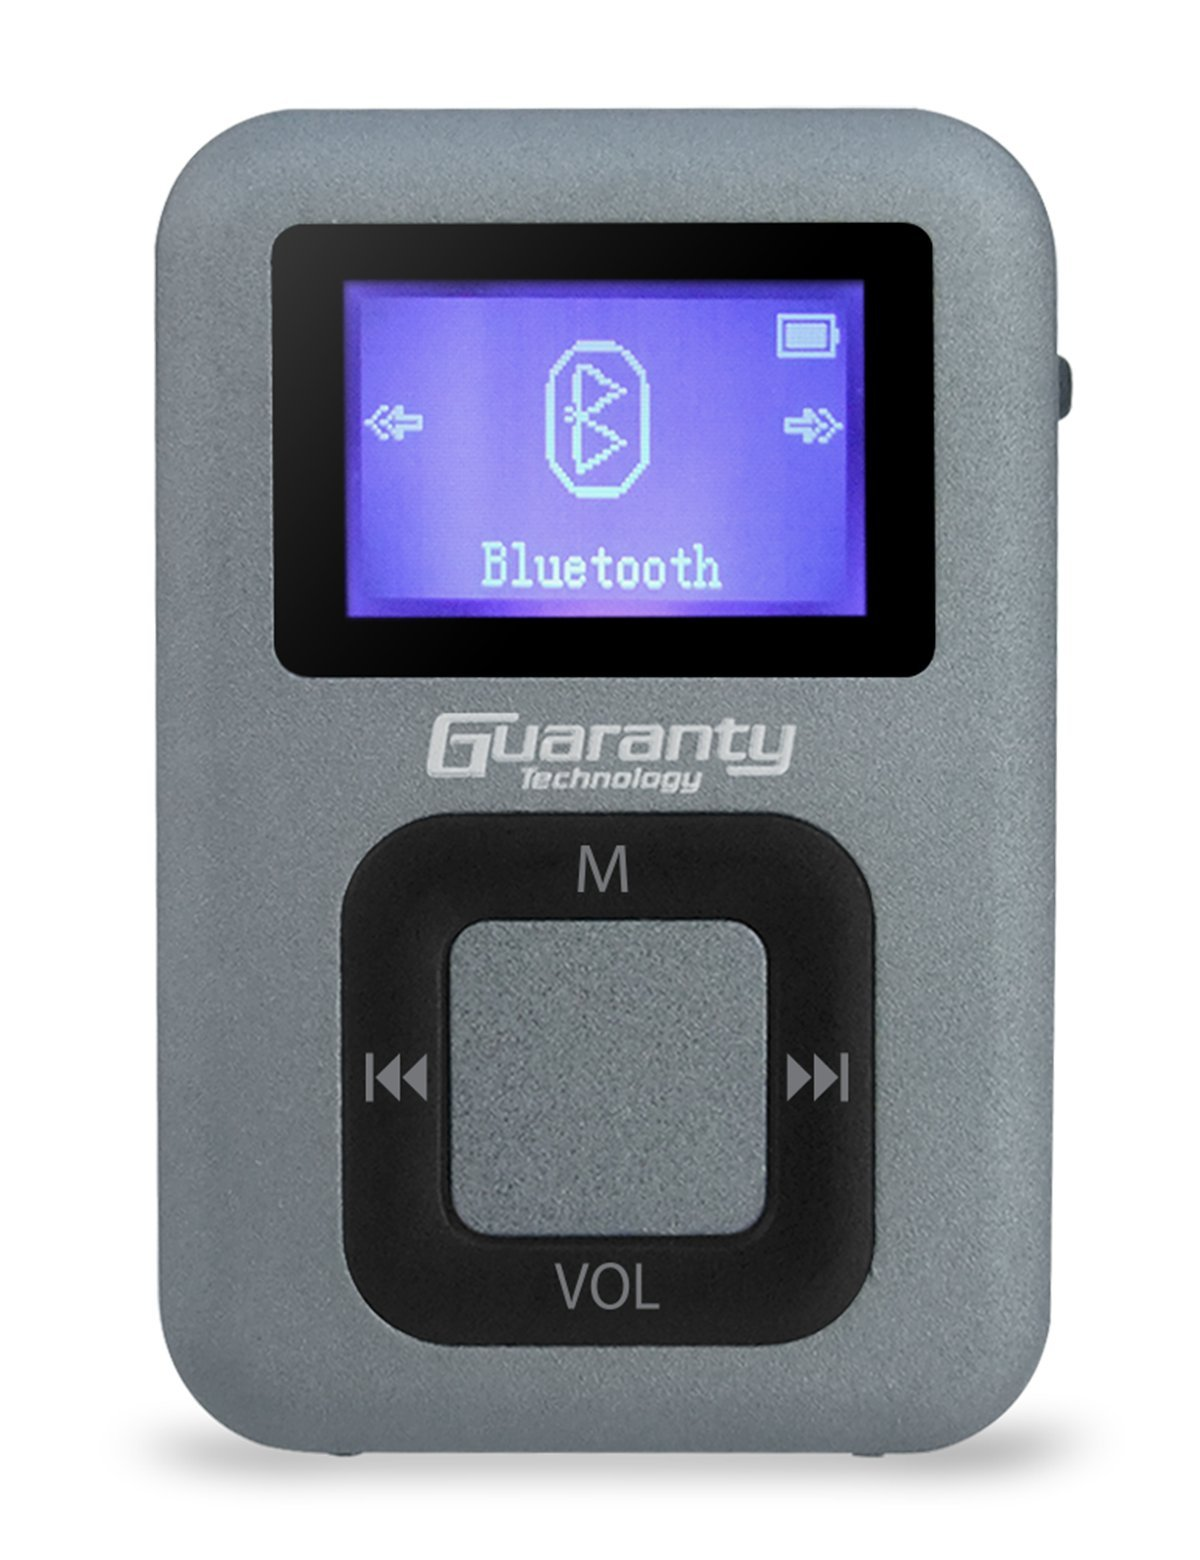 MP3 Music Player with Bluetooth and FM Radio for Running, Guaranty 8GB Clip Portable Audio Player [with wired earphone], Gray